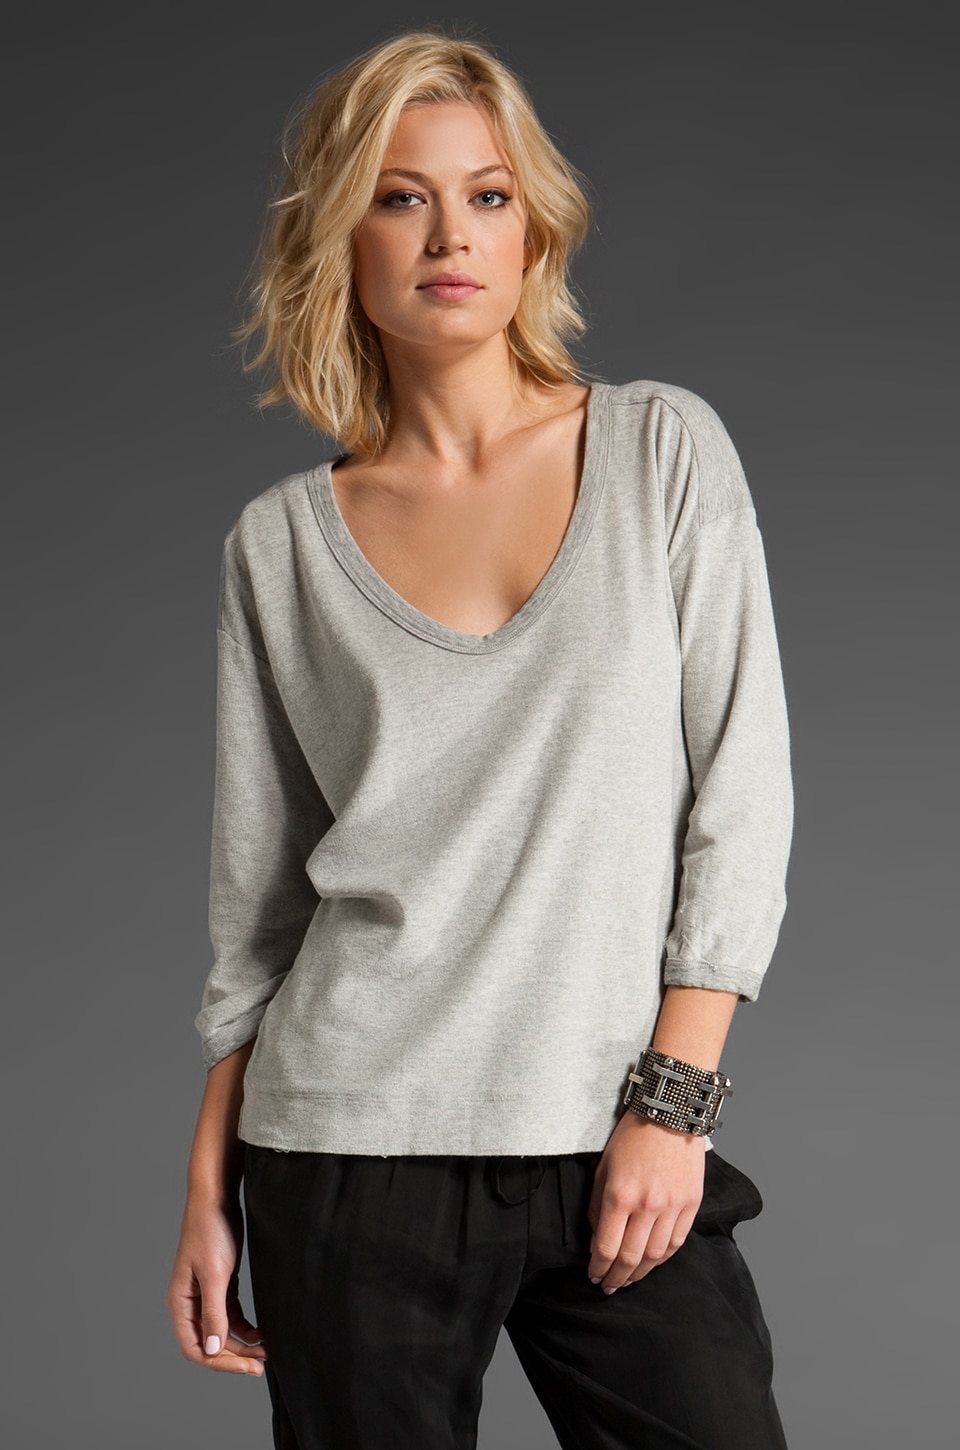 James Perse Scoop Sweatshirt Top in Heather Grey